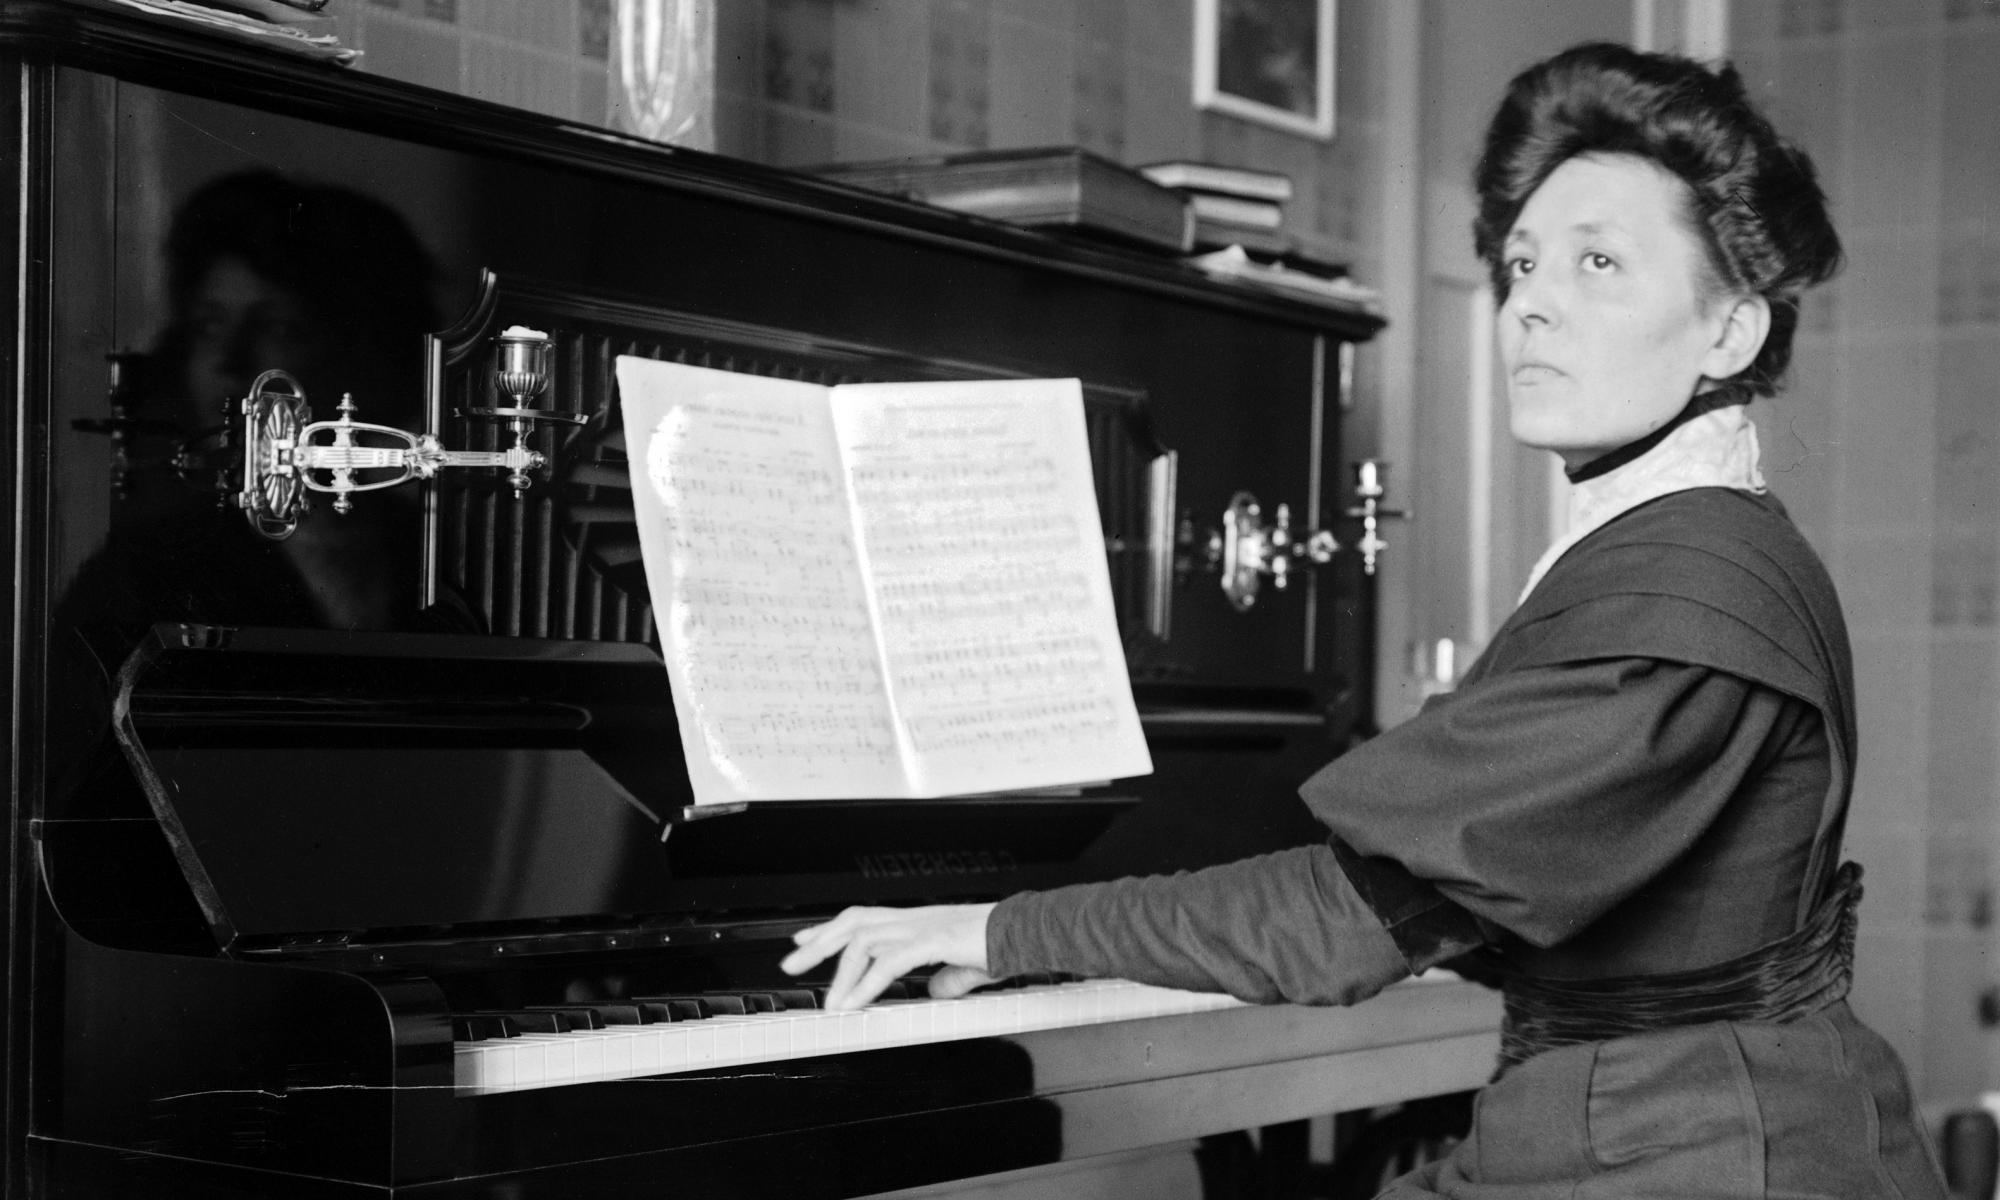 The woman at the piano